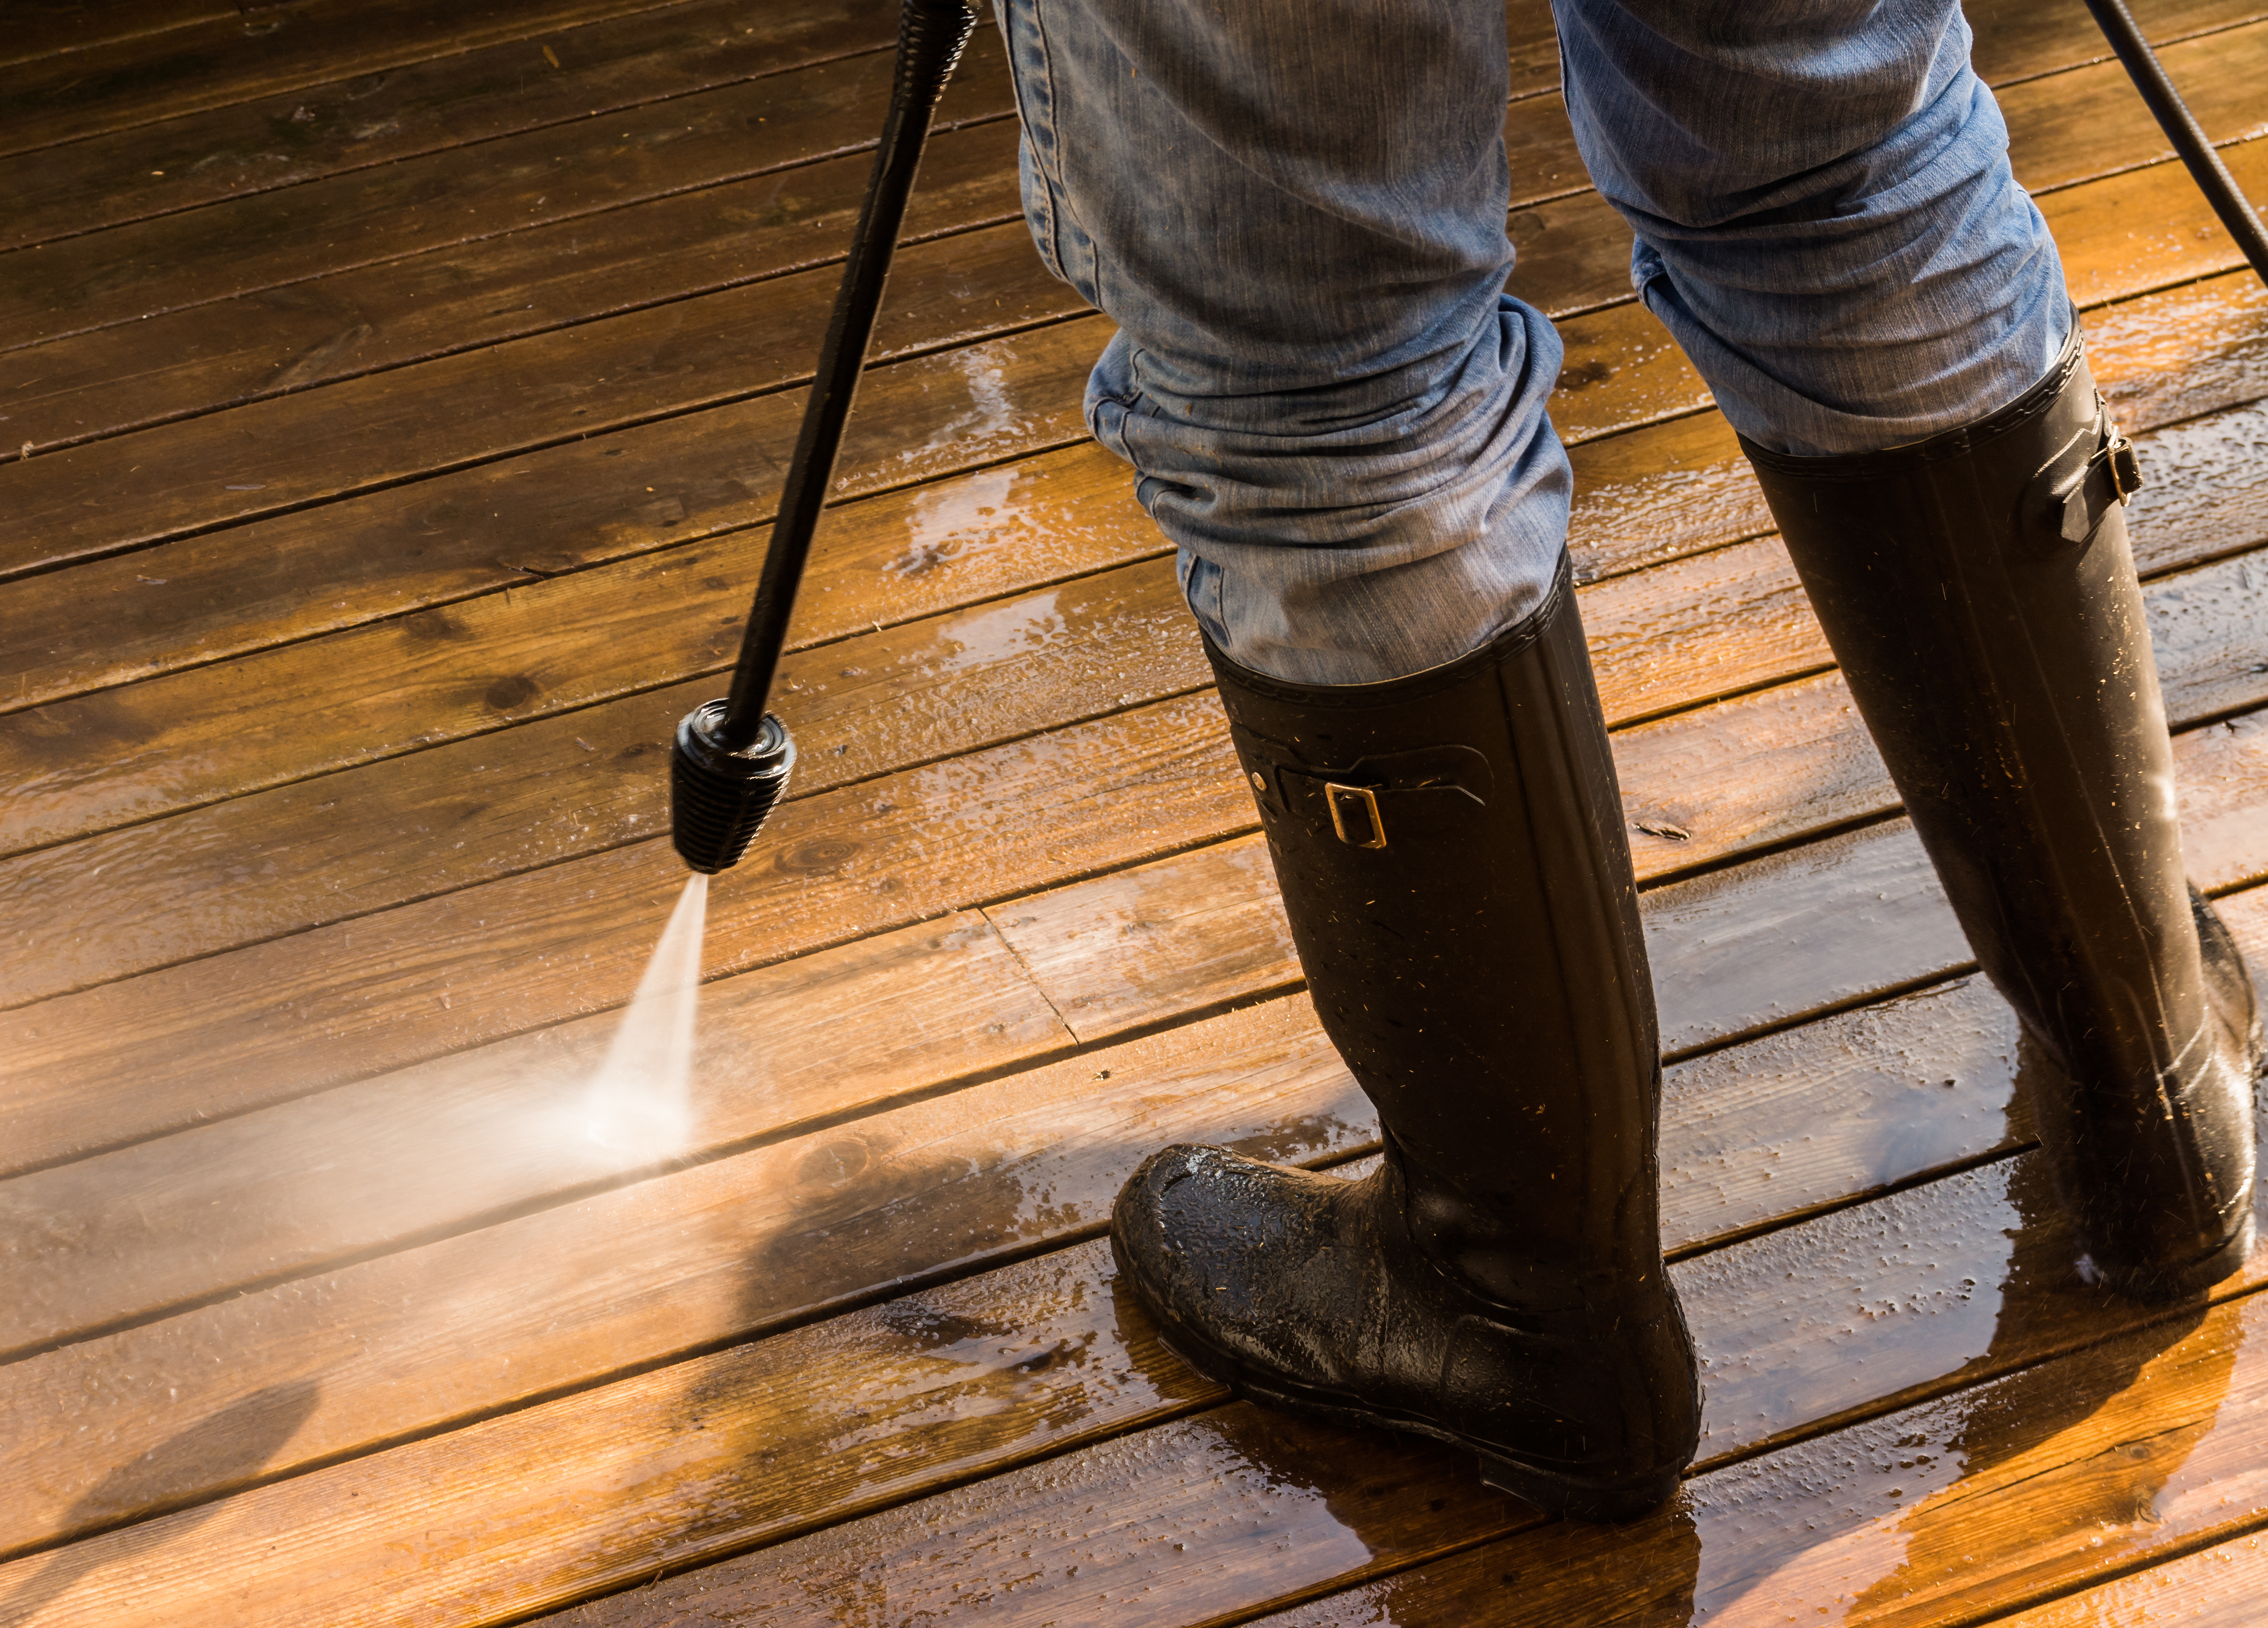 Pressure washing safety while cleaning deck and patio